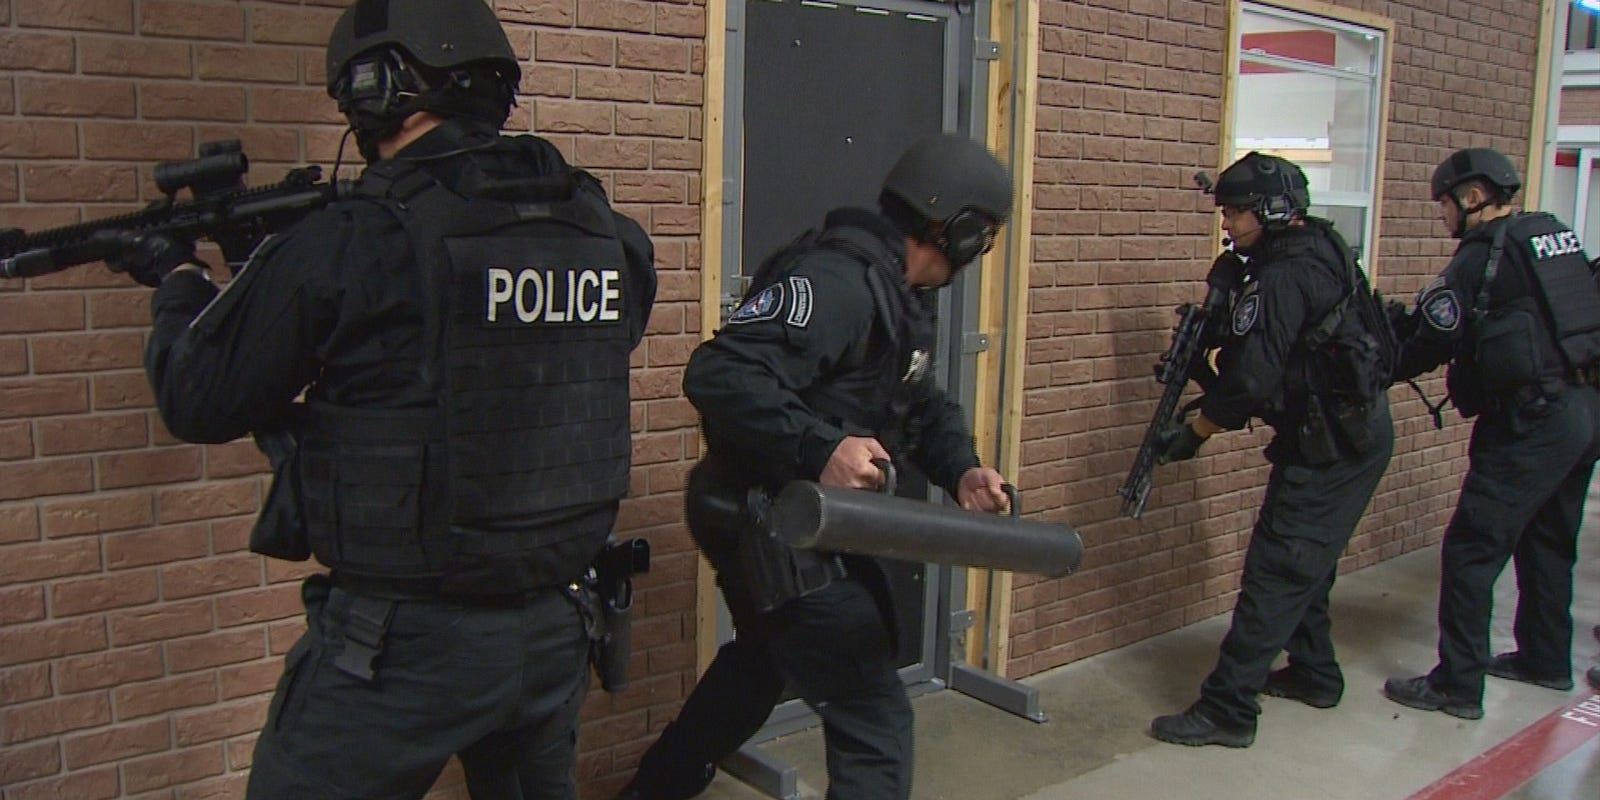 FW tactical training complex prepares authorities for the worst